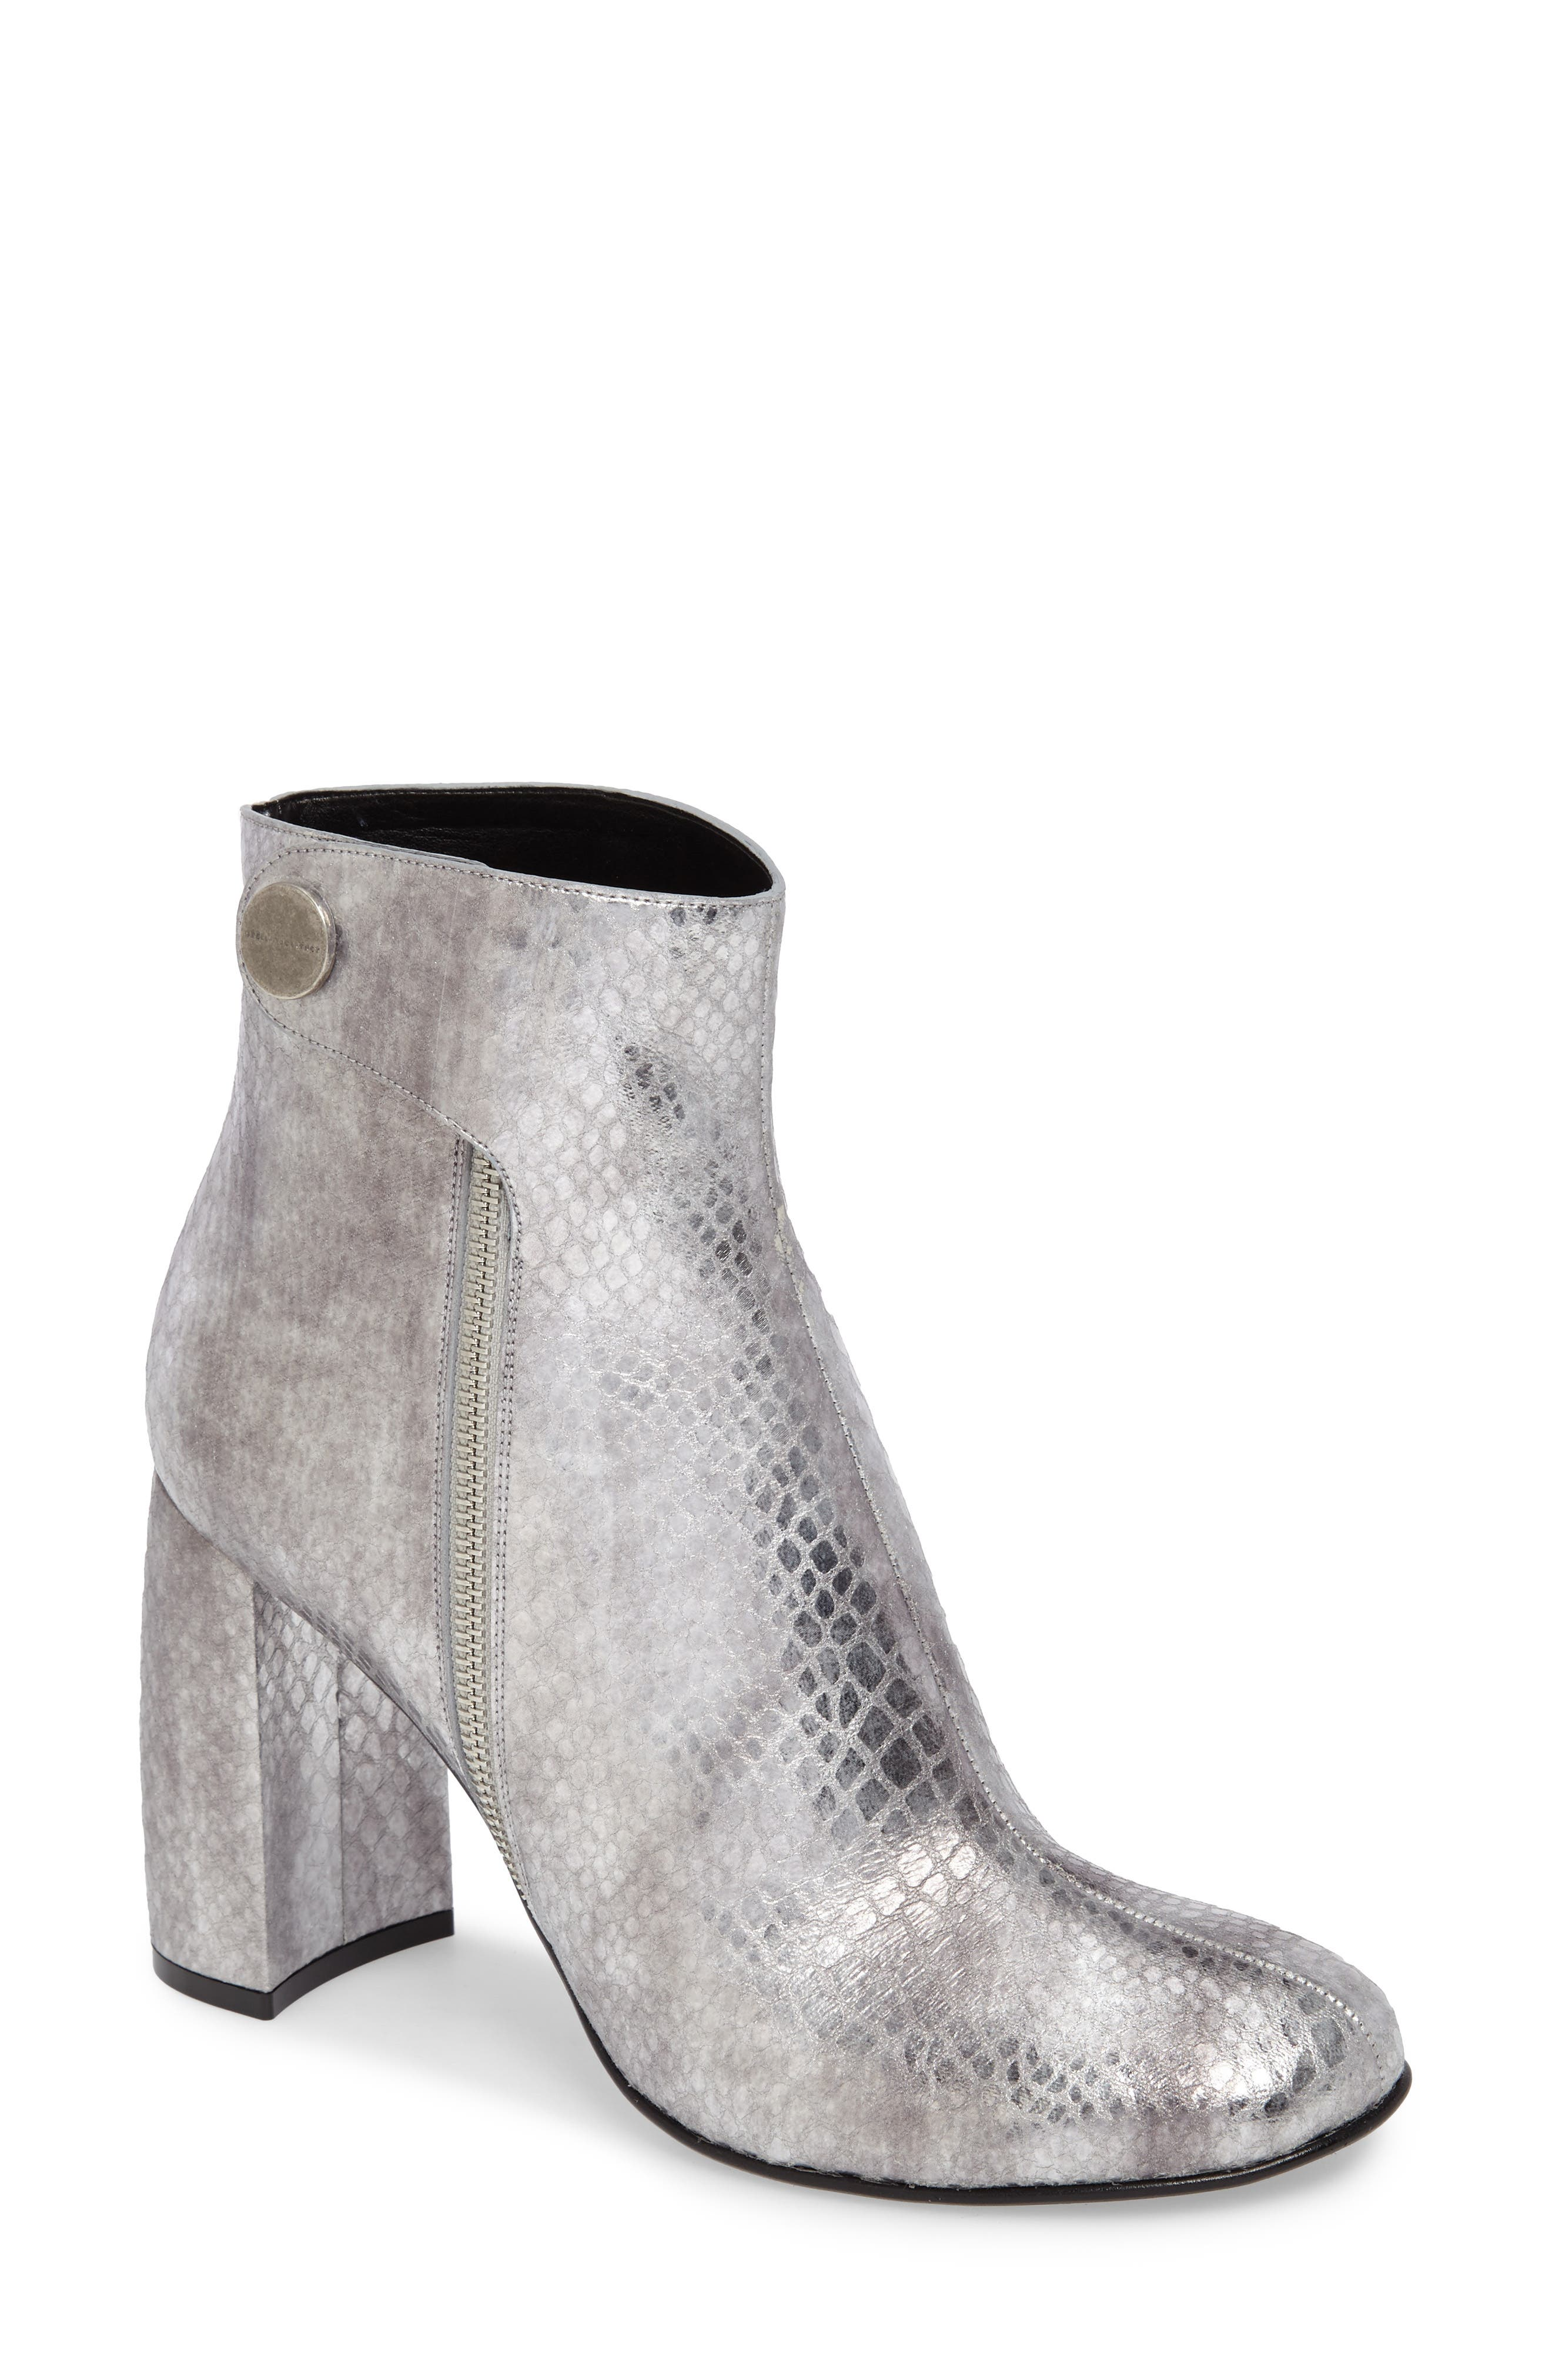 Alter Bootie,                         Main,                         color, 045